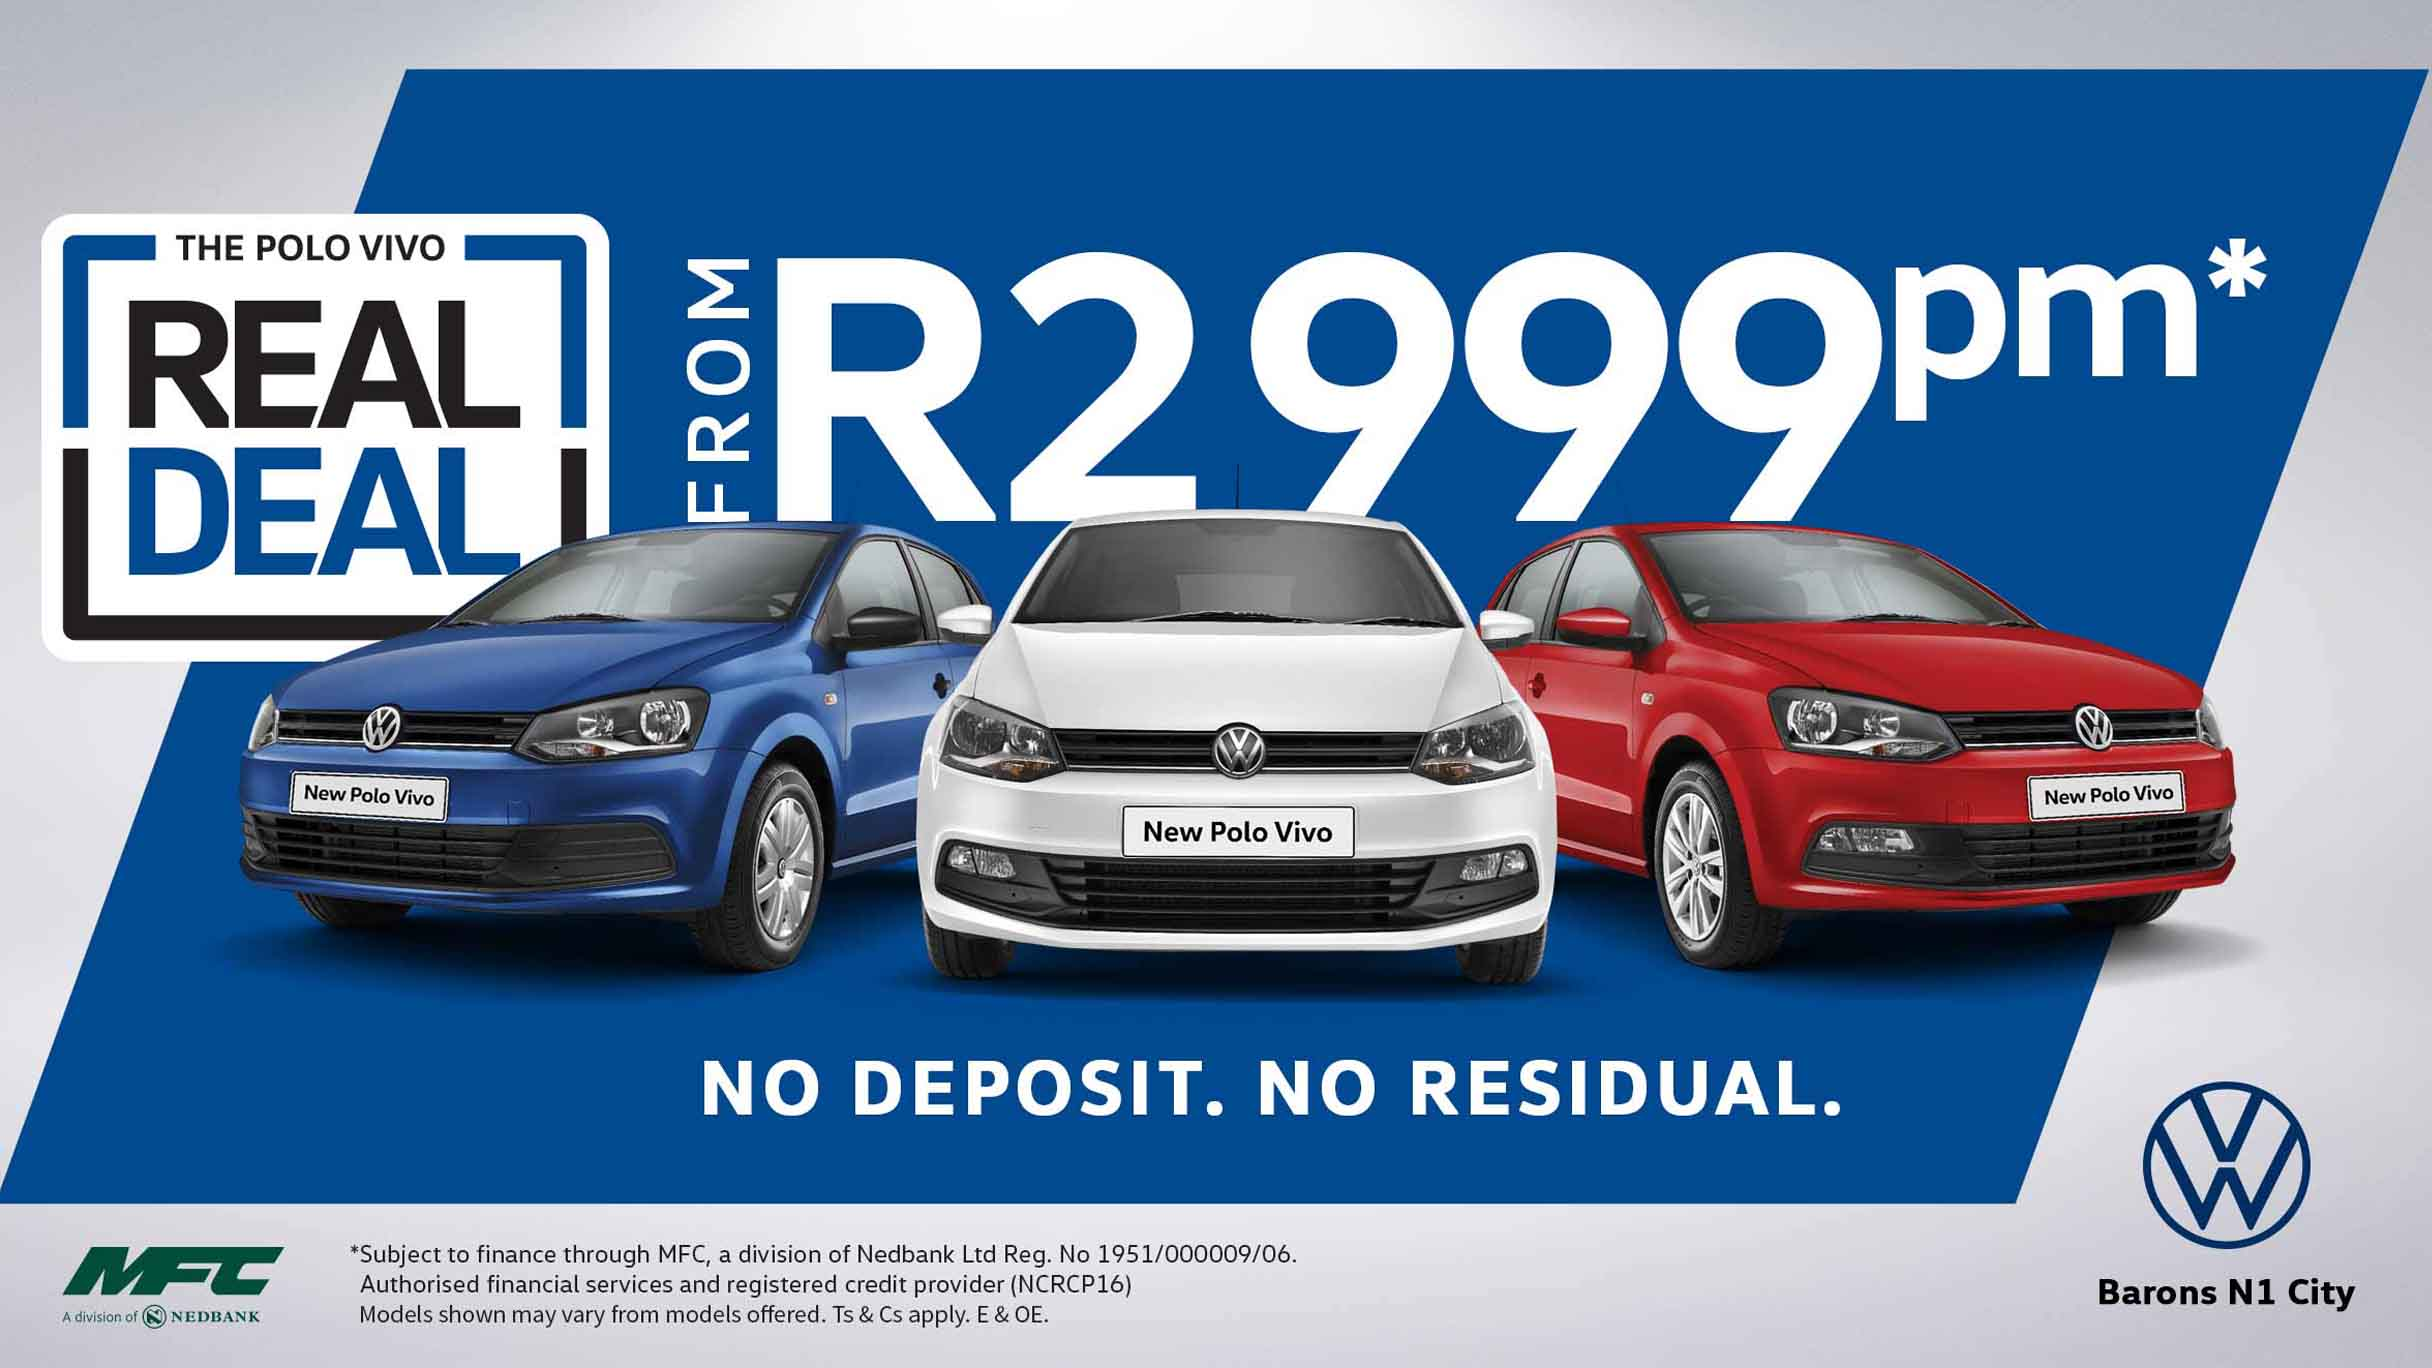 Polo Vivo special deal Barons N1 City.